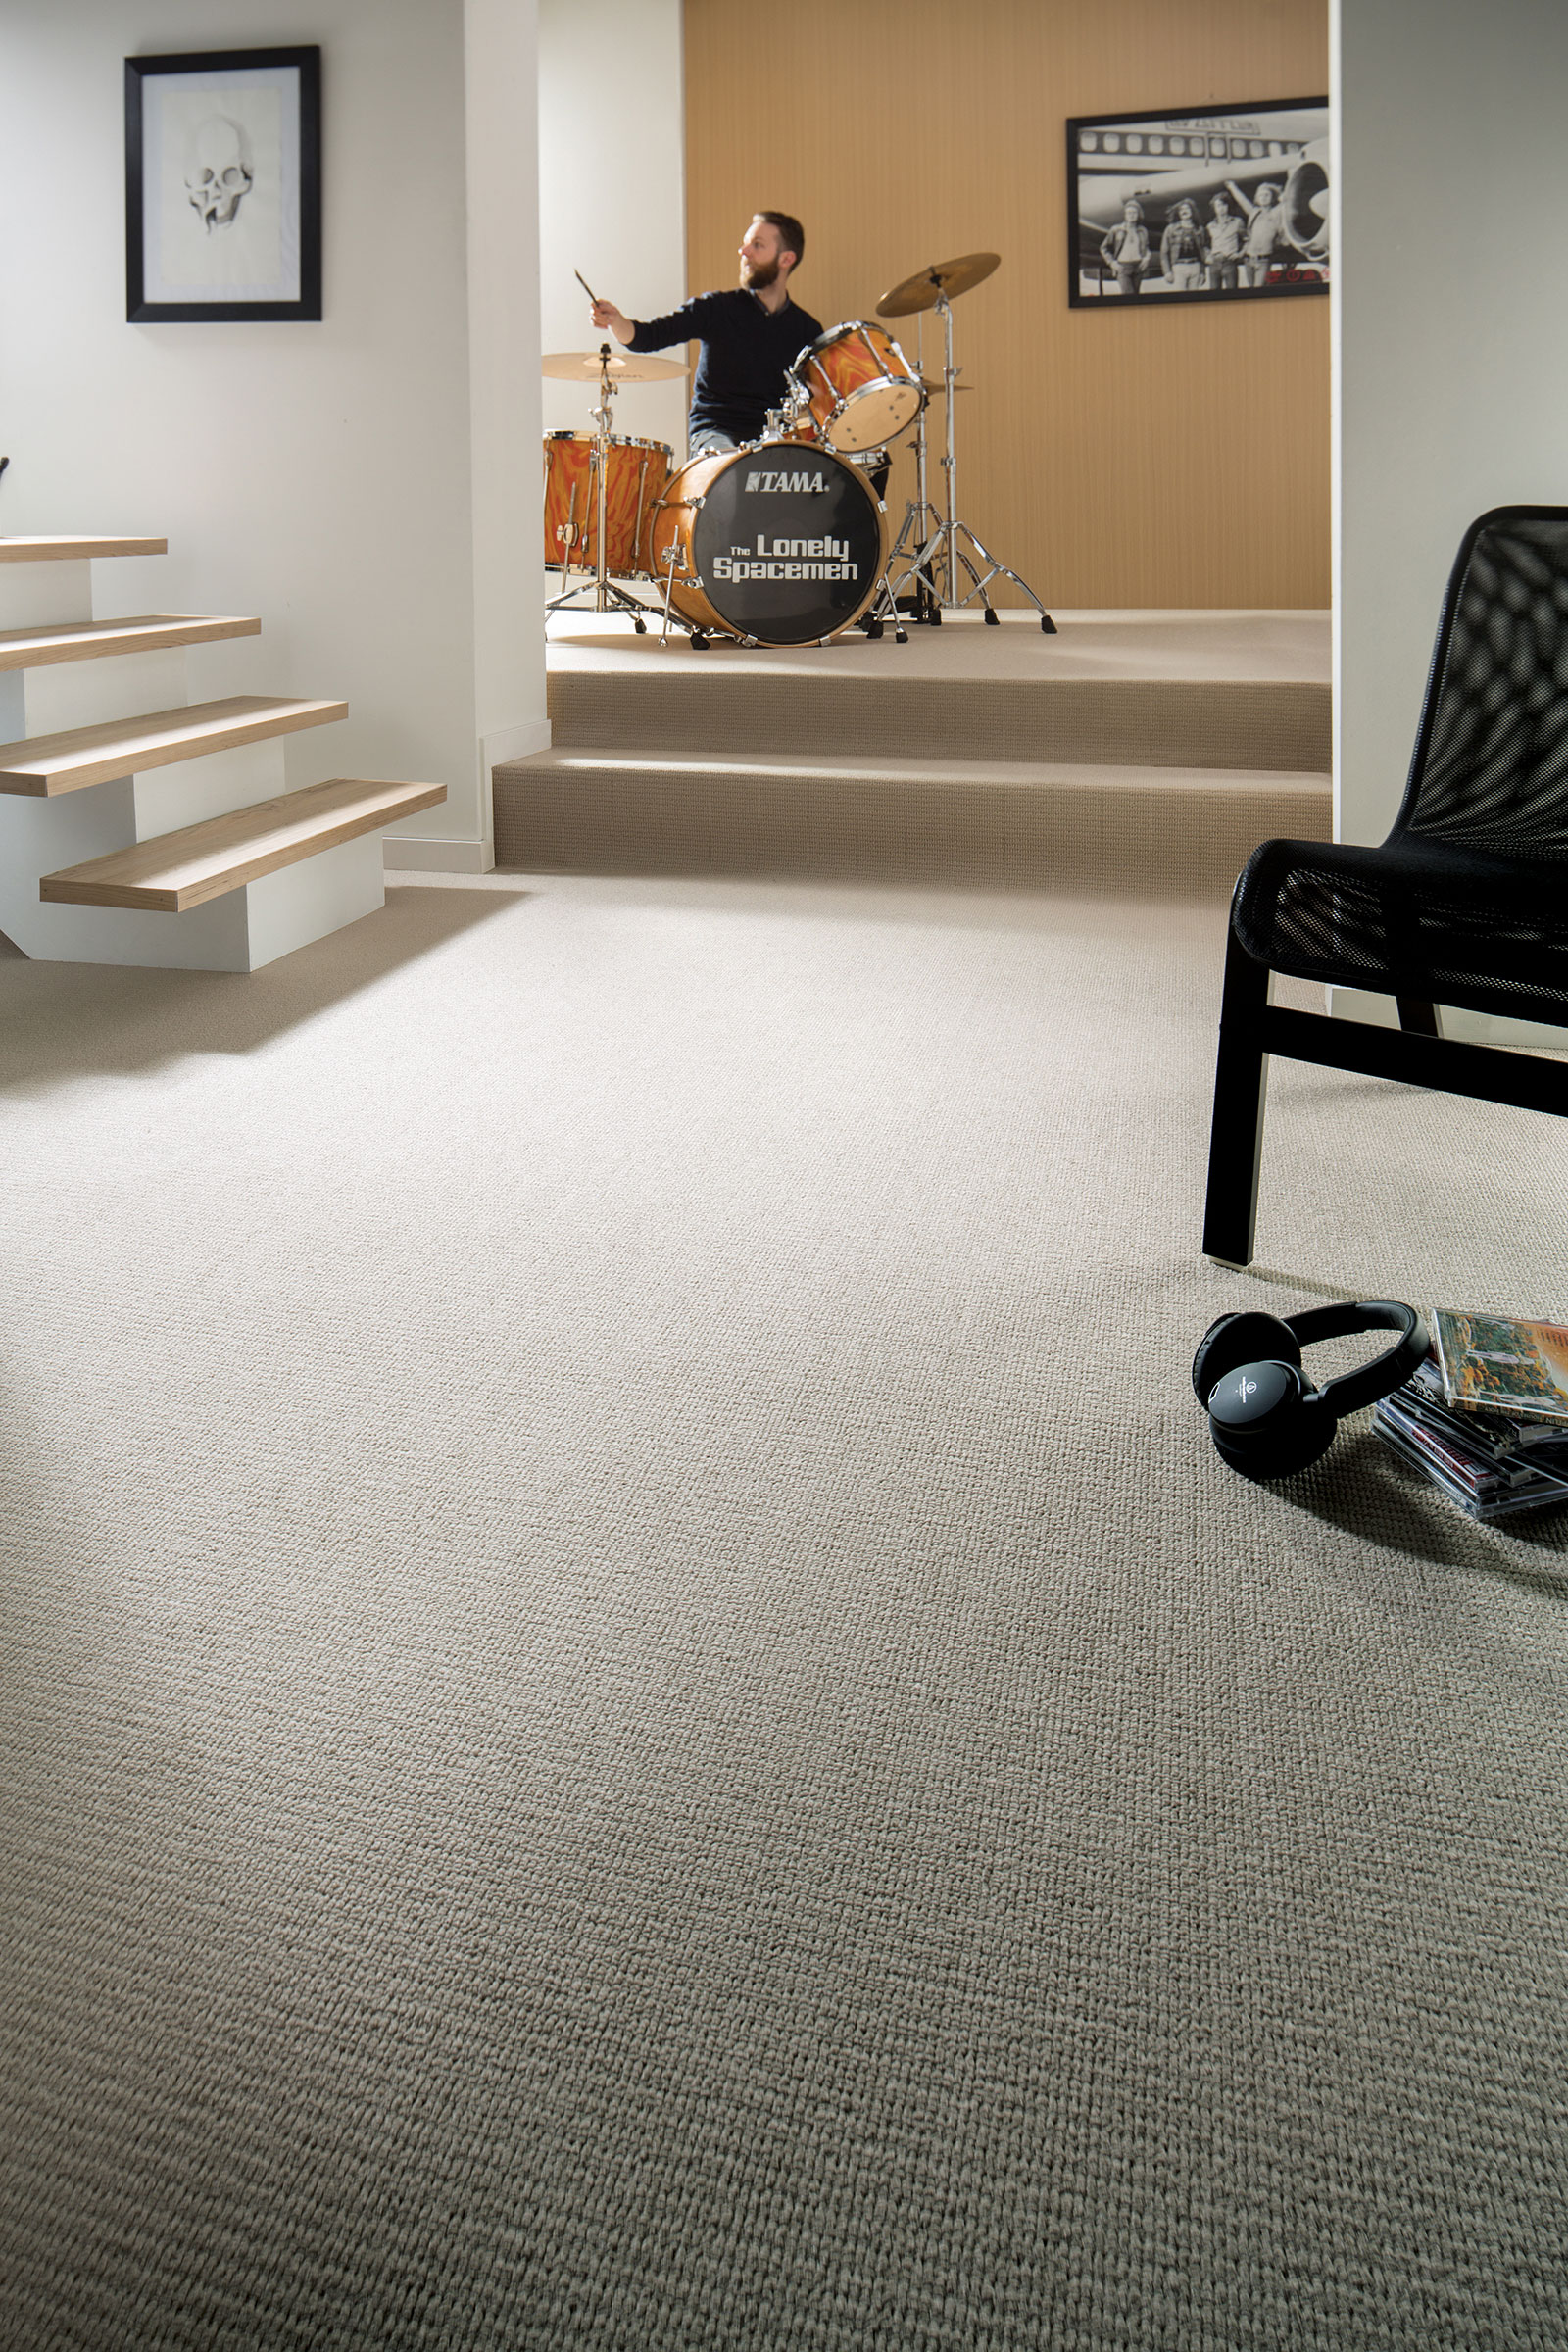 Artistic Flooring Ideas For Your Home Music Room - Choices Flooring